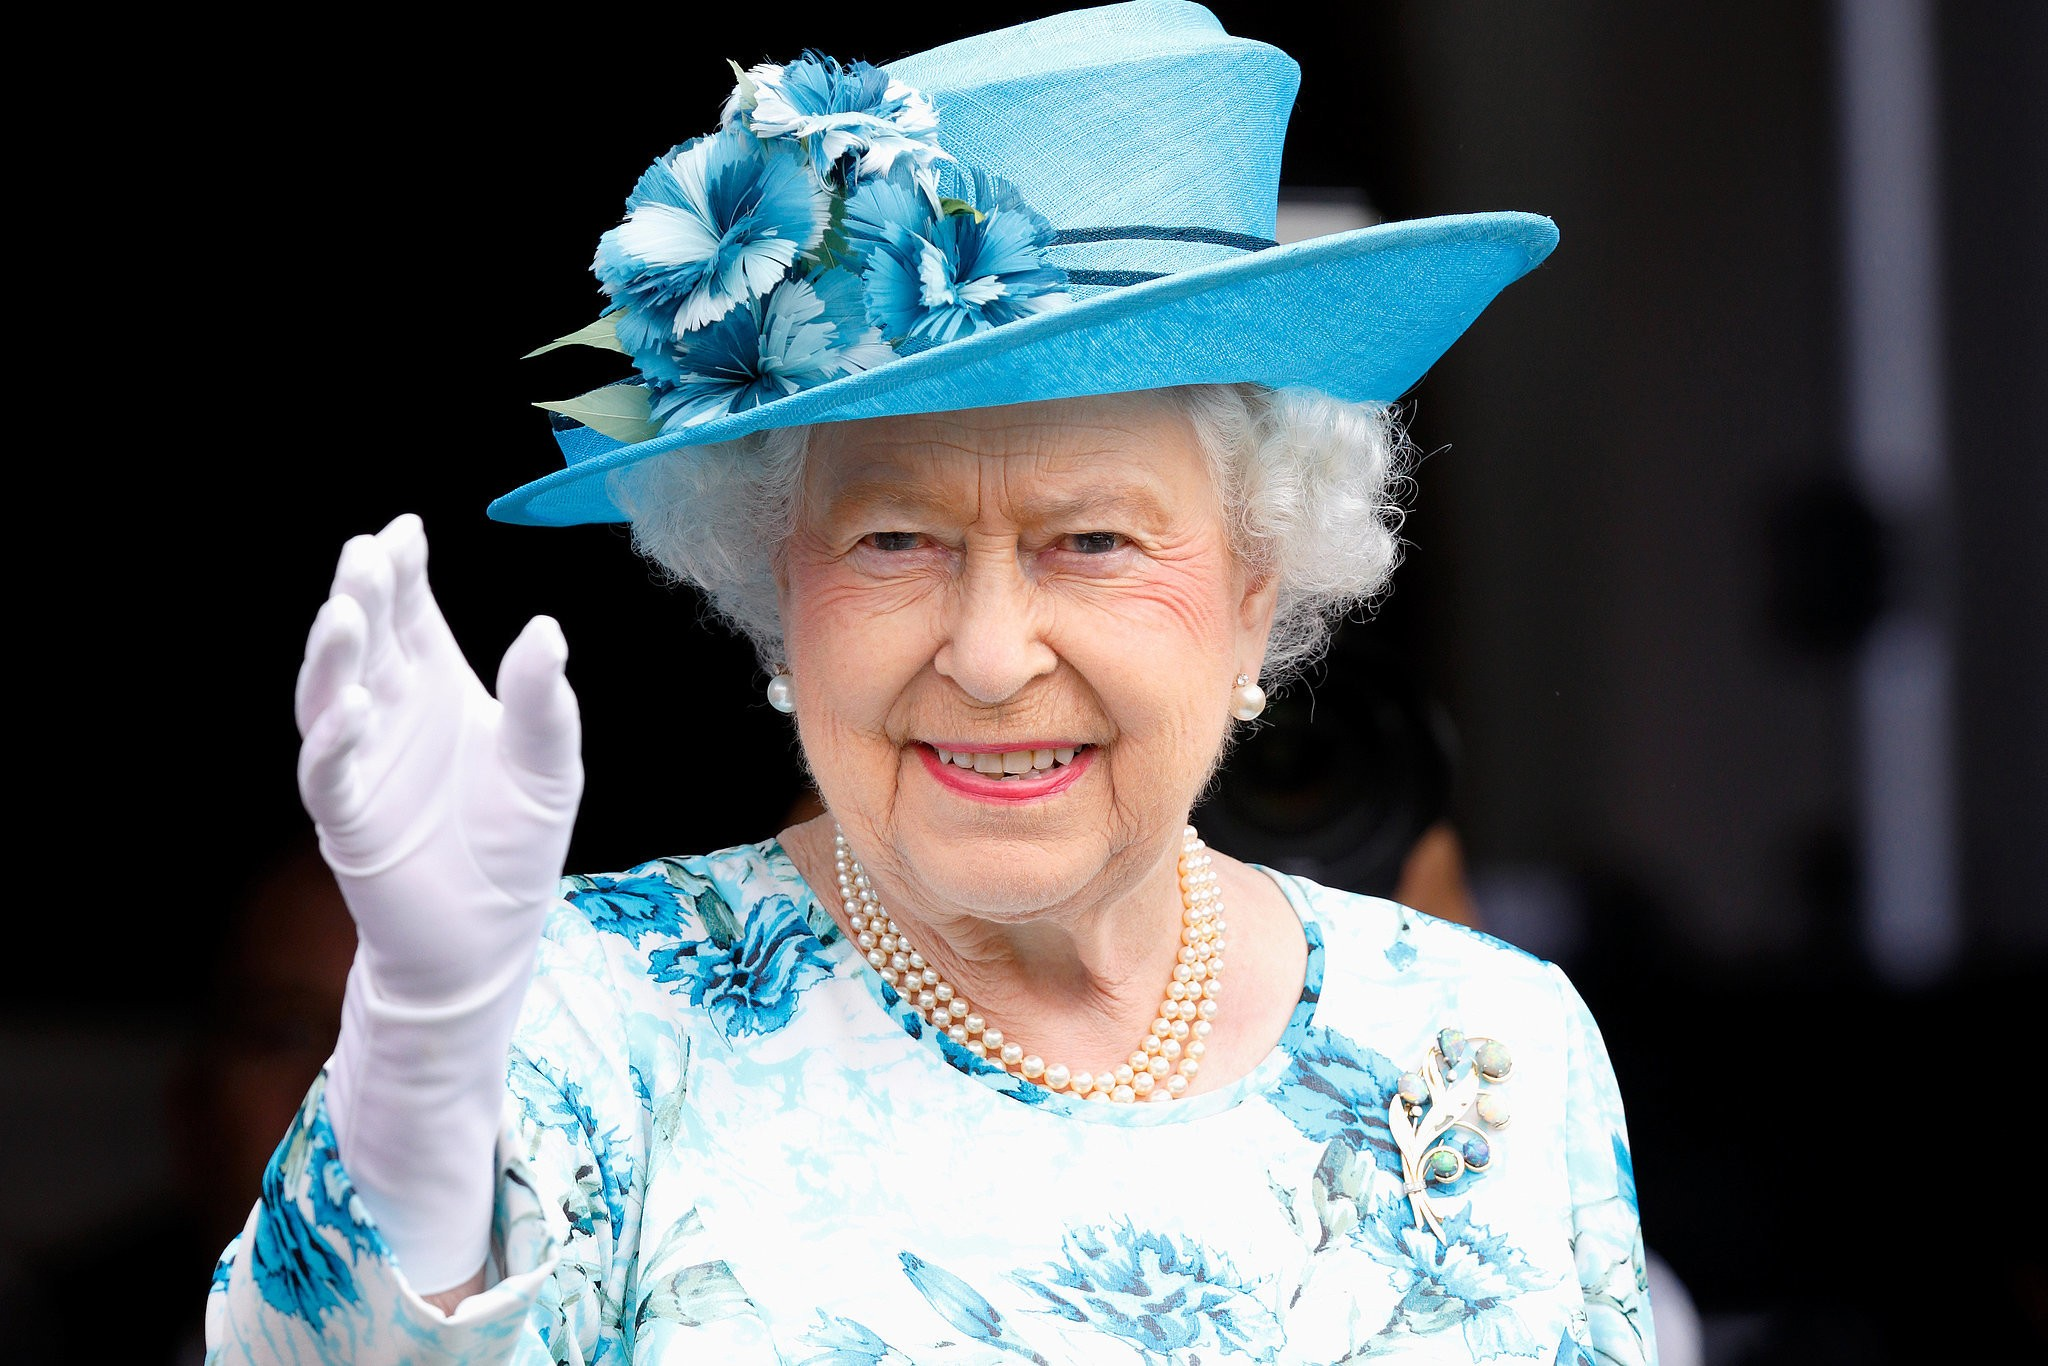 Top 10 Richest Royal Families In The World, Queen Elizabeth